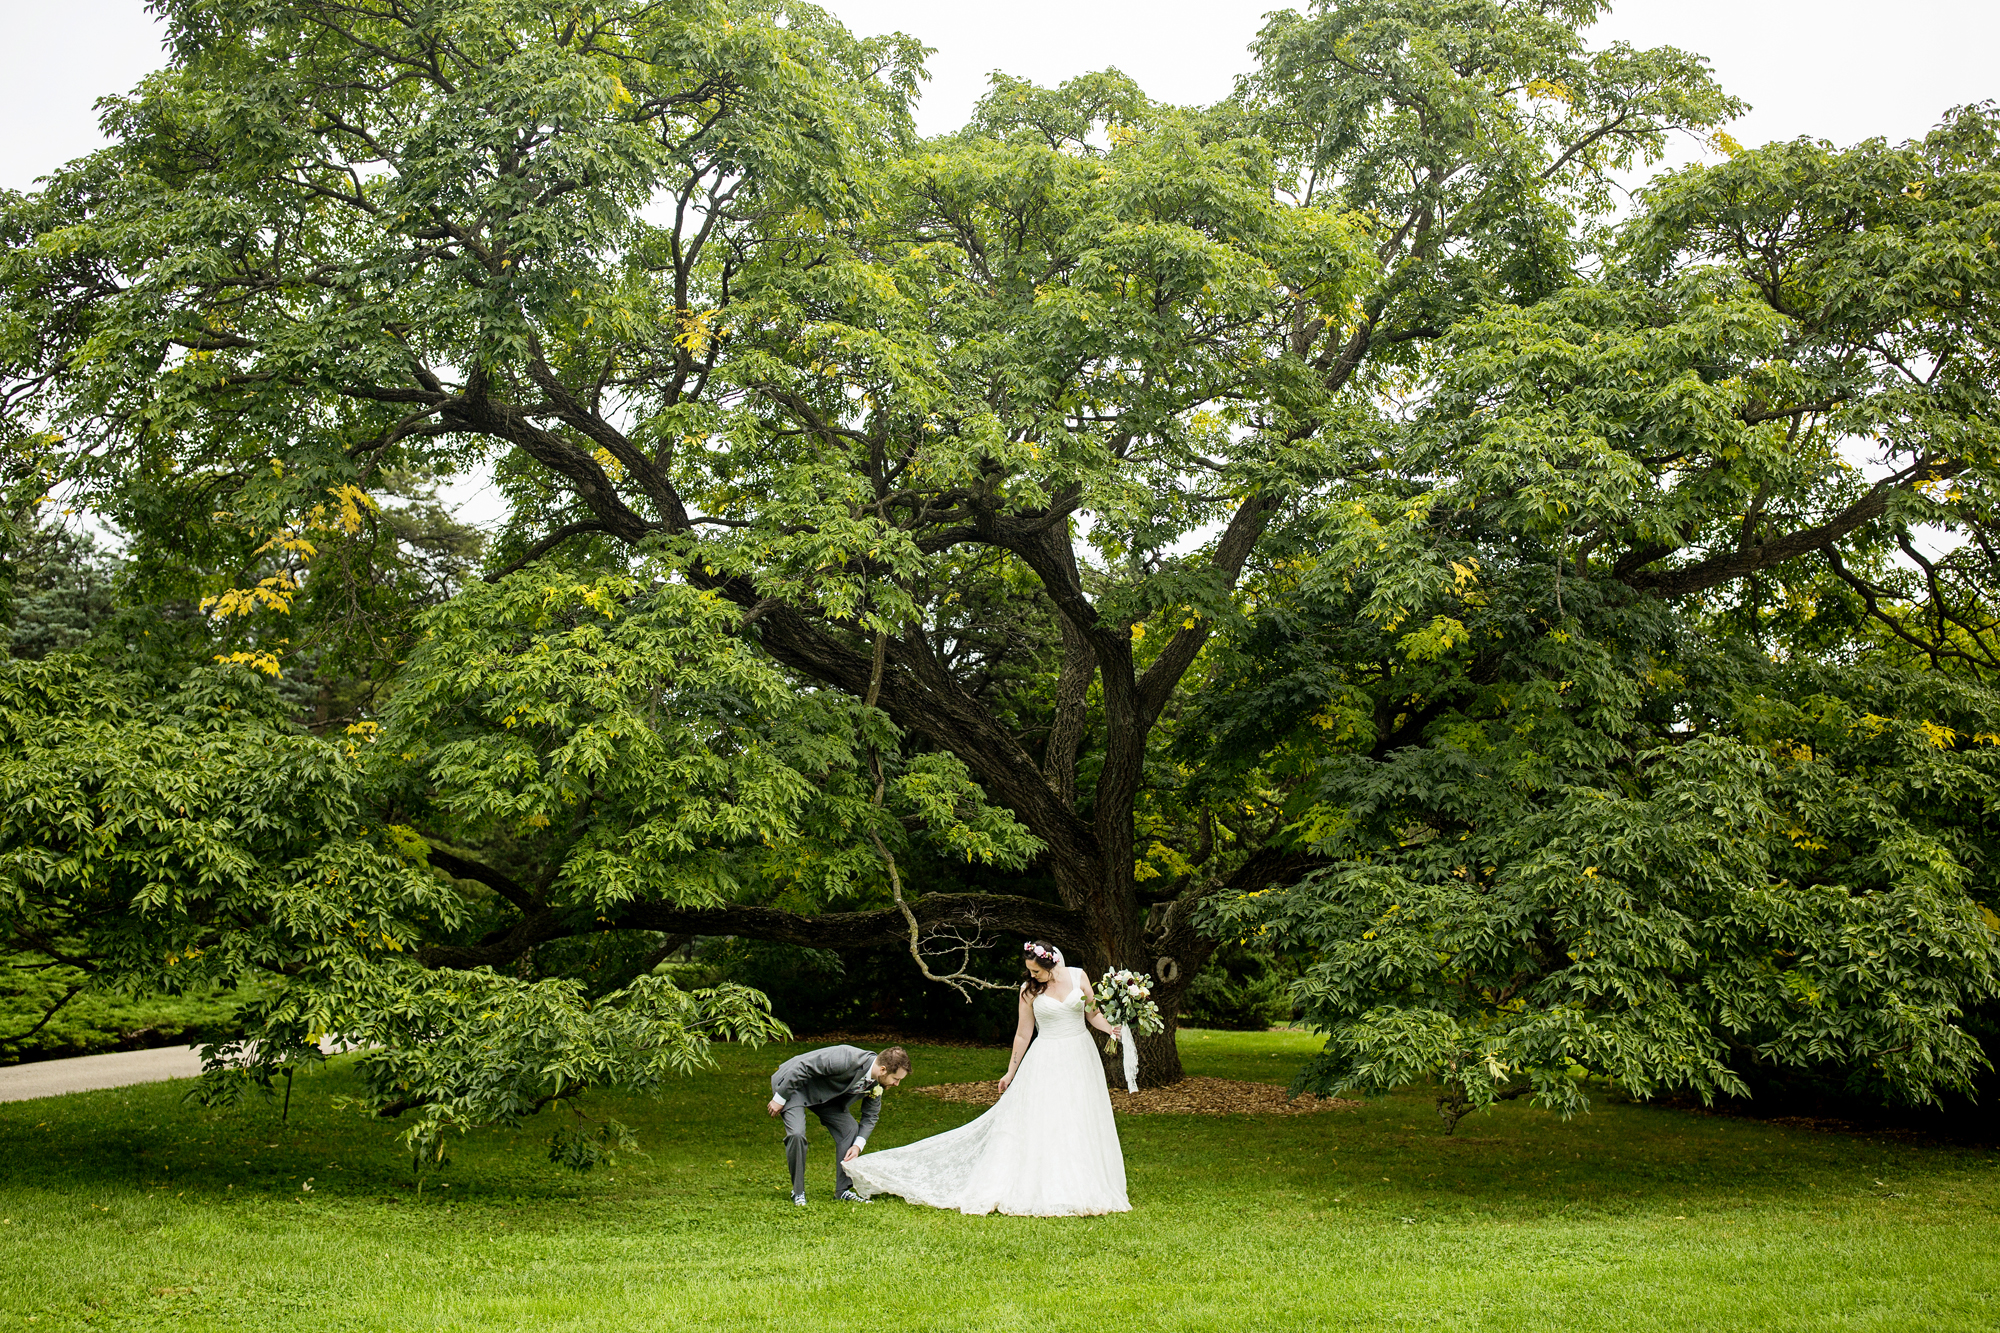 Seriously_Sabrina_Photography_Lisle_Illinois_Morton_Arboretum_Wedding_Day_Gowen86.jpg